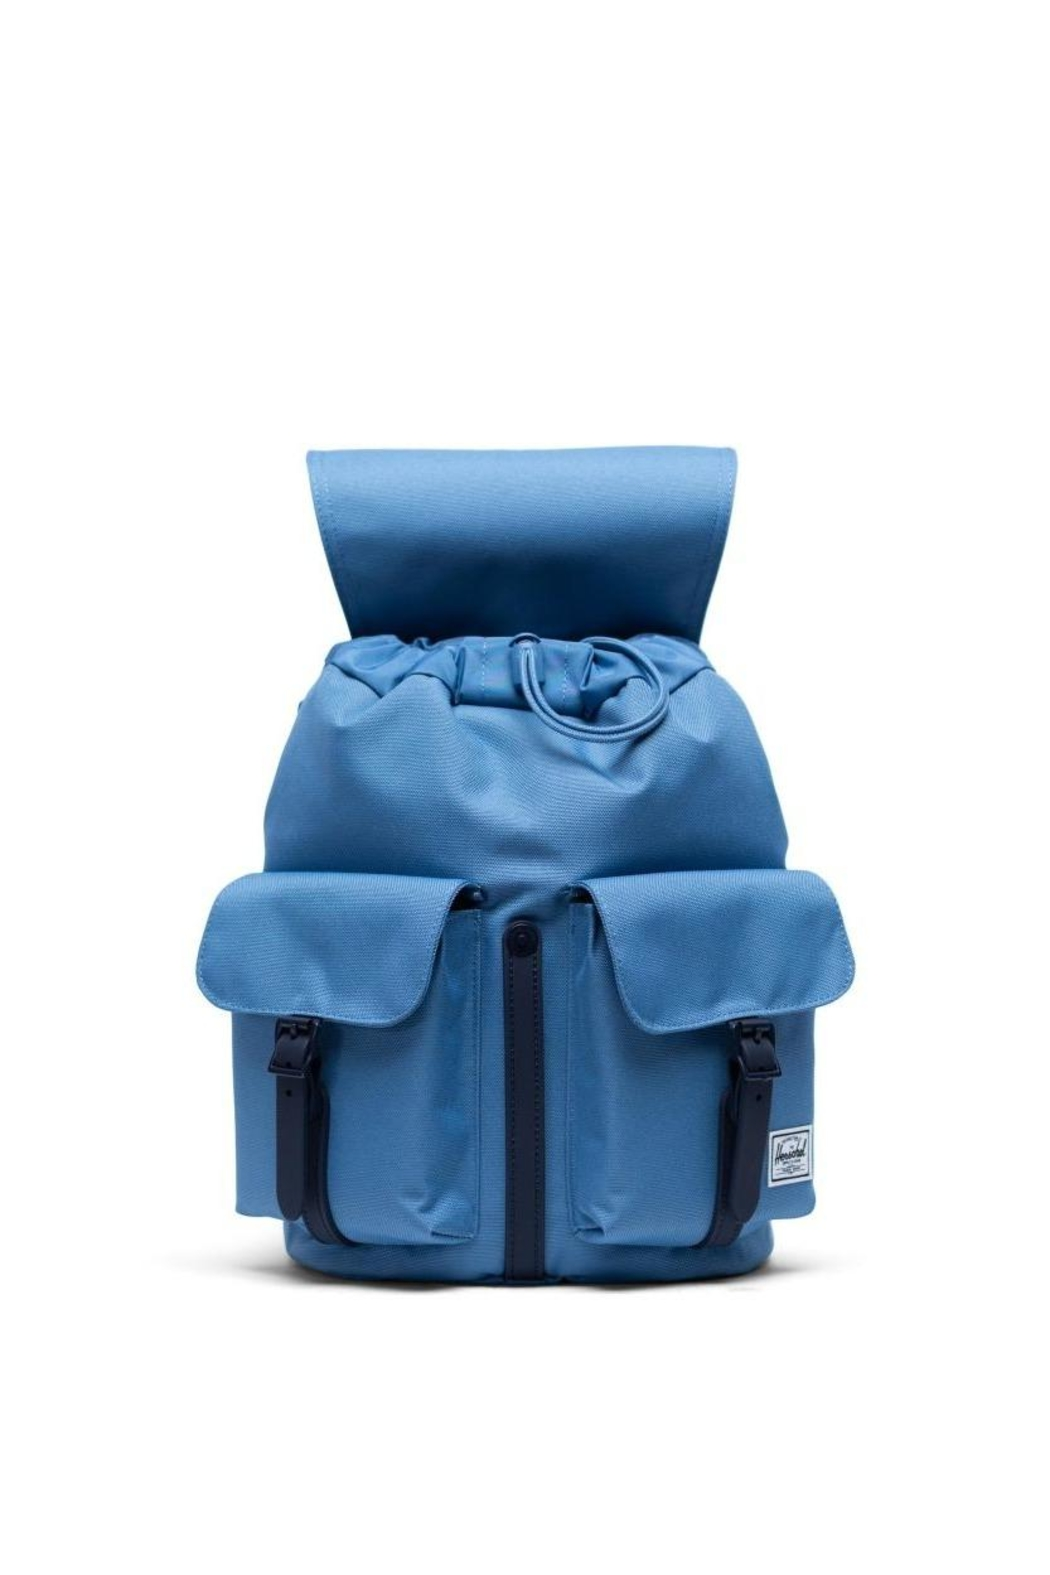 Herschel Supply Co. Small Blue Backpack - Front Full Image